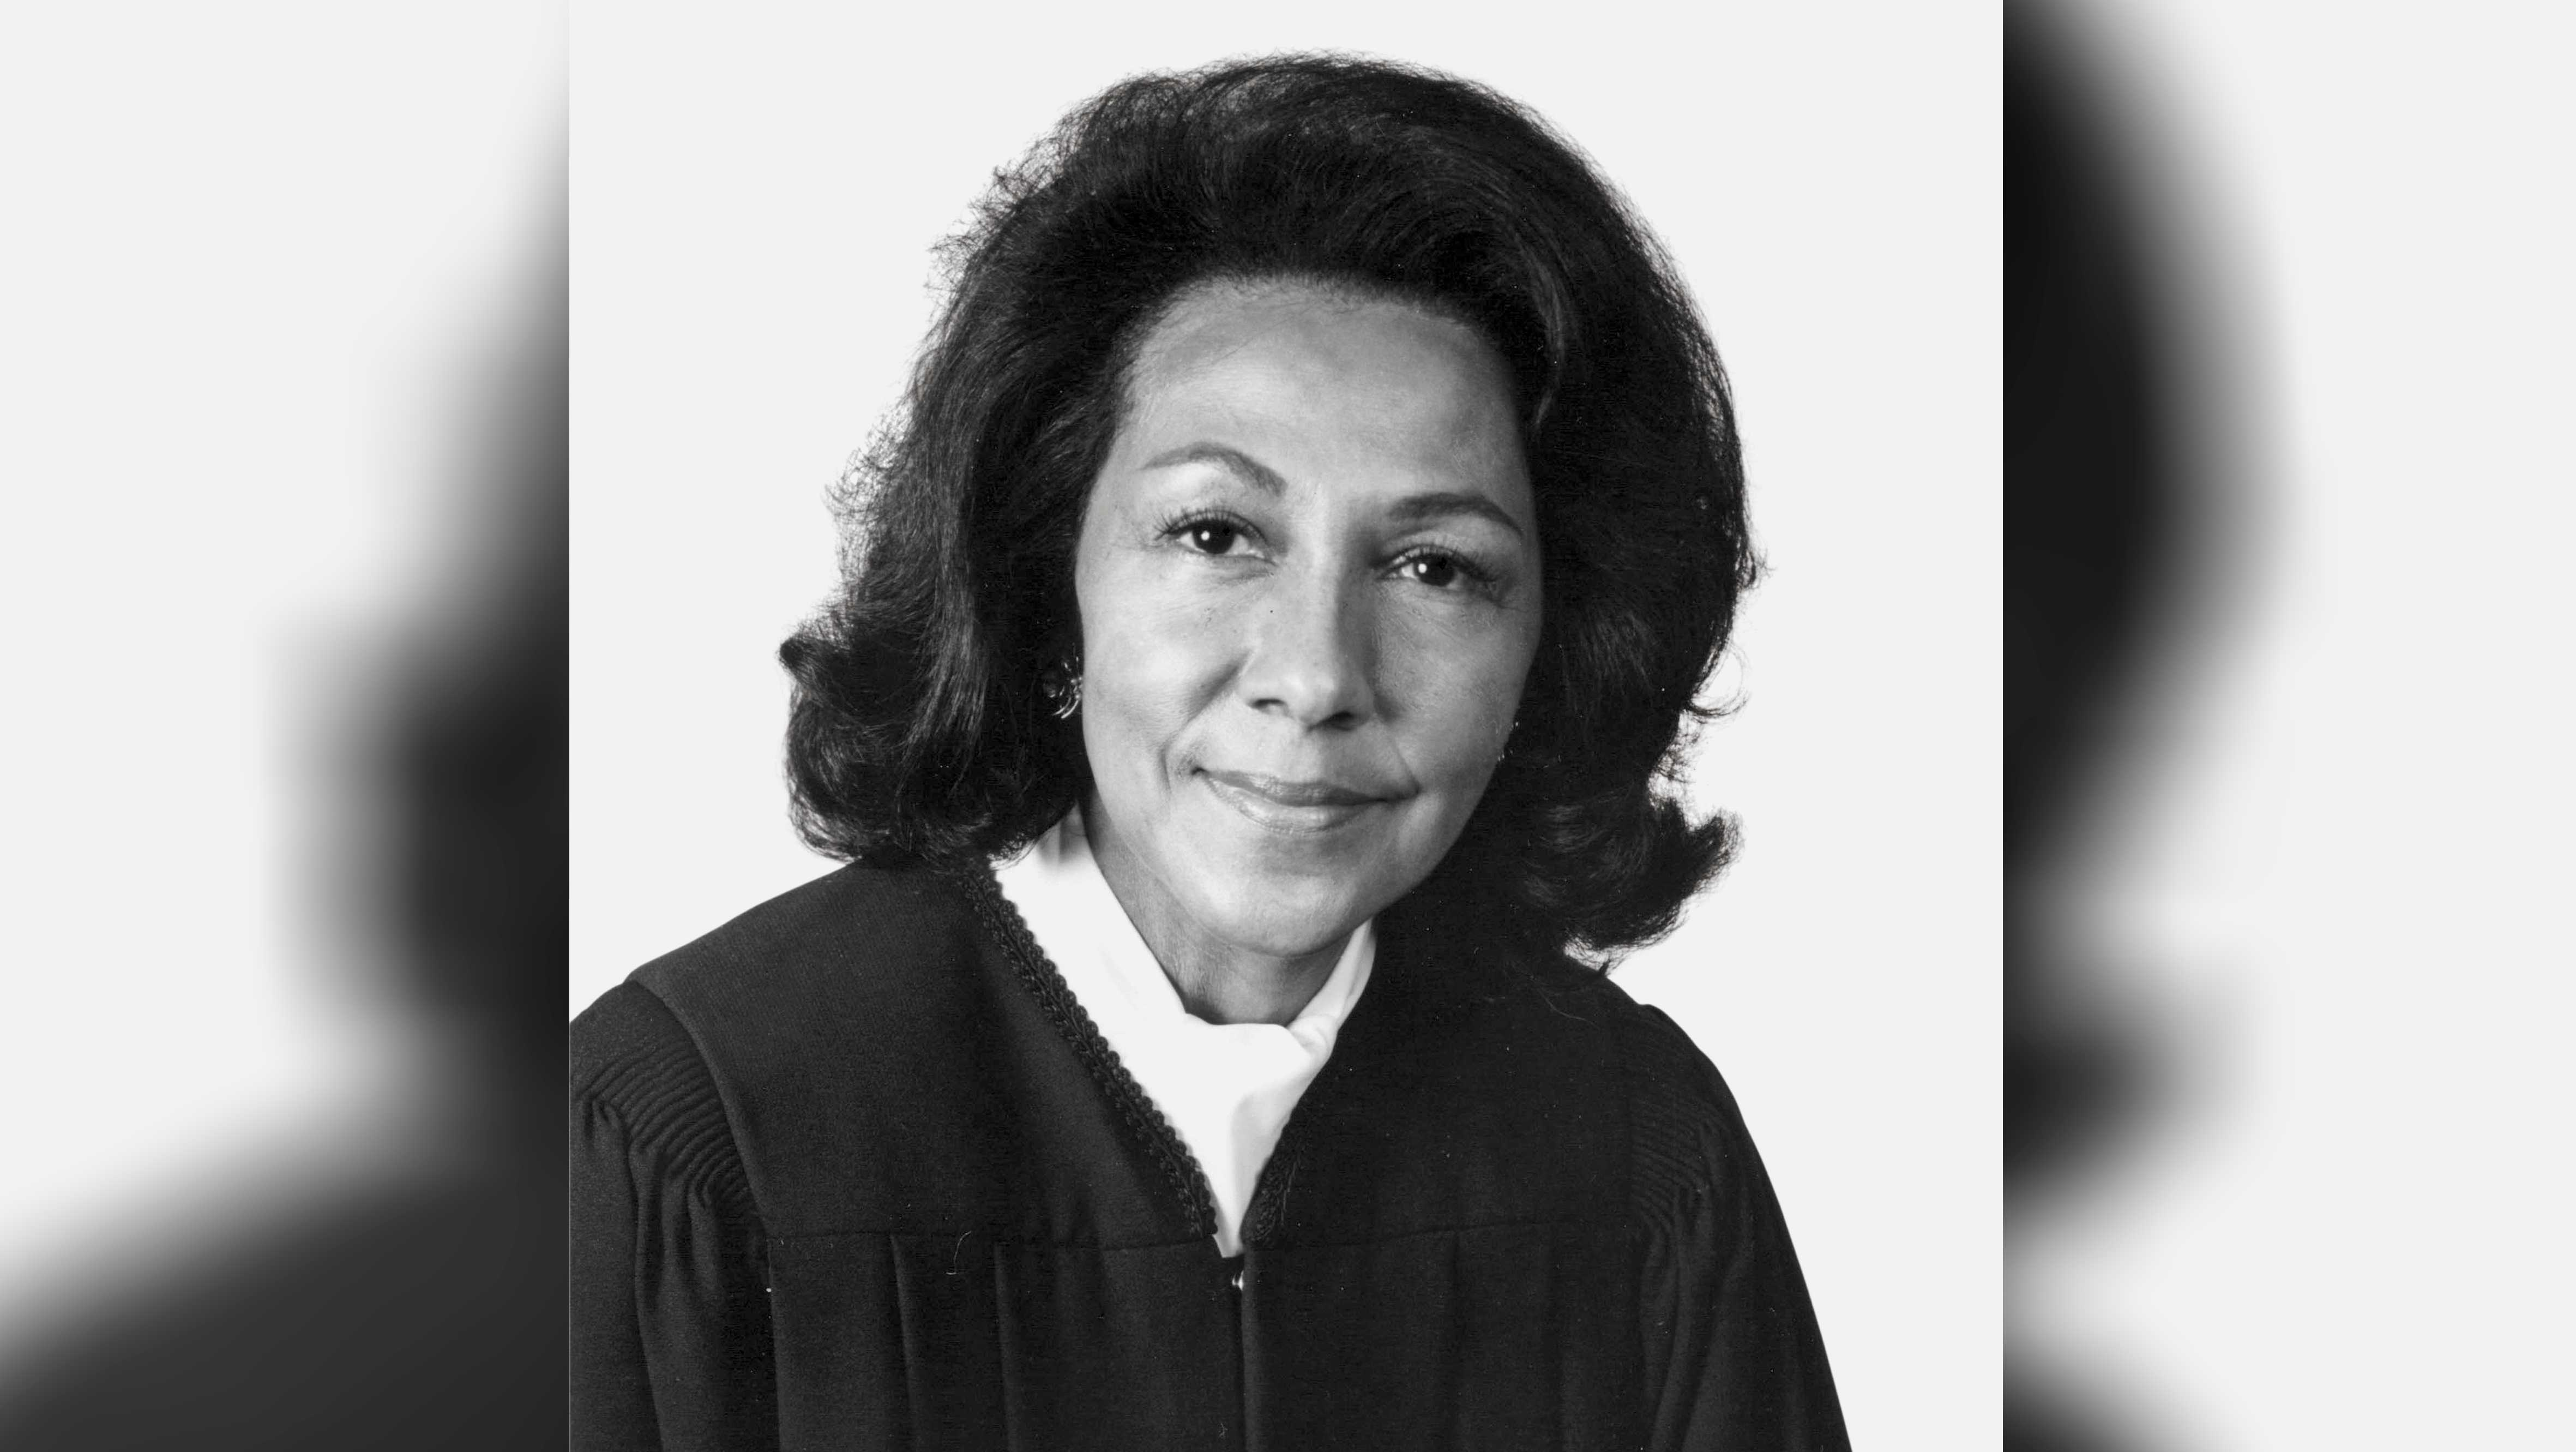 "This 1989 photo provided by Southwestern Law School shows Vaino Spencer, the first female black judge in California and one of the longest-serving jurists in state history. Spencer died of natural causes on Oct. 25, 2016, at the age of 96, her family said. Spencer's niece, Fatimah Gilliam, describes Spencer as ""a trailblazer and a self-made woman in an era when there were few opportunities for women and people of color."""